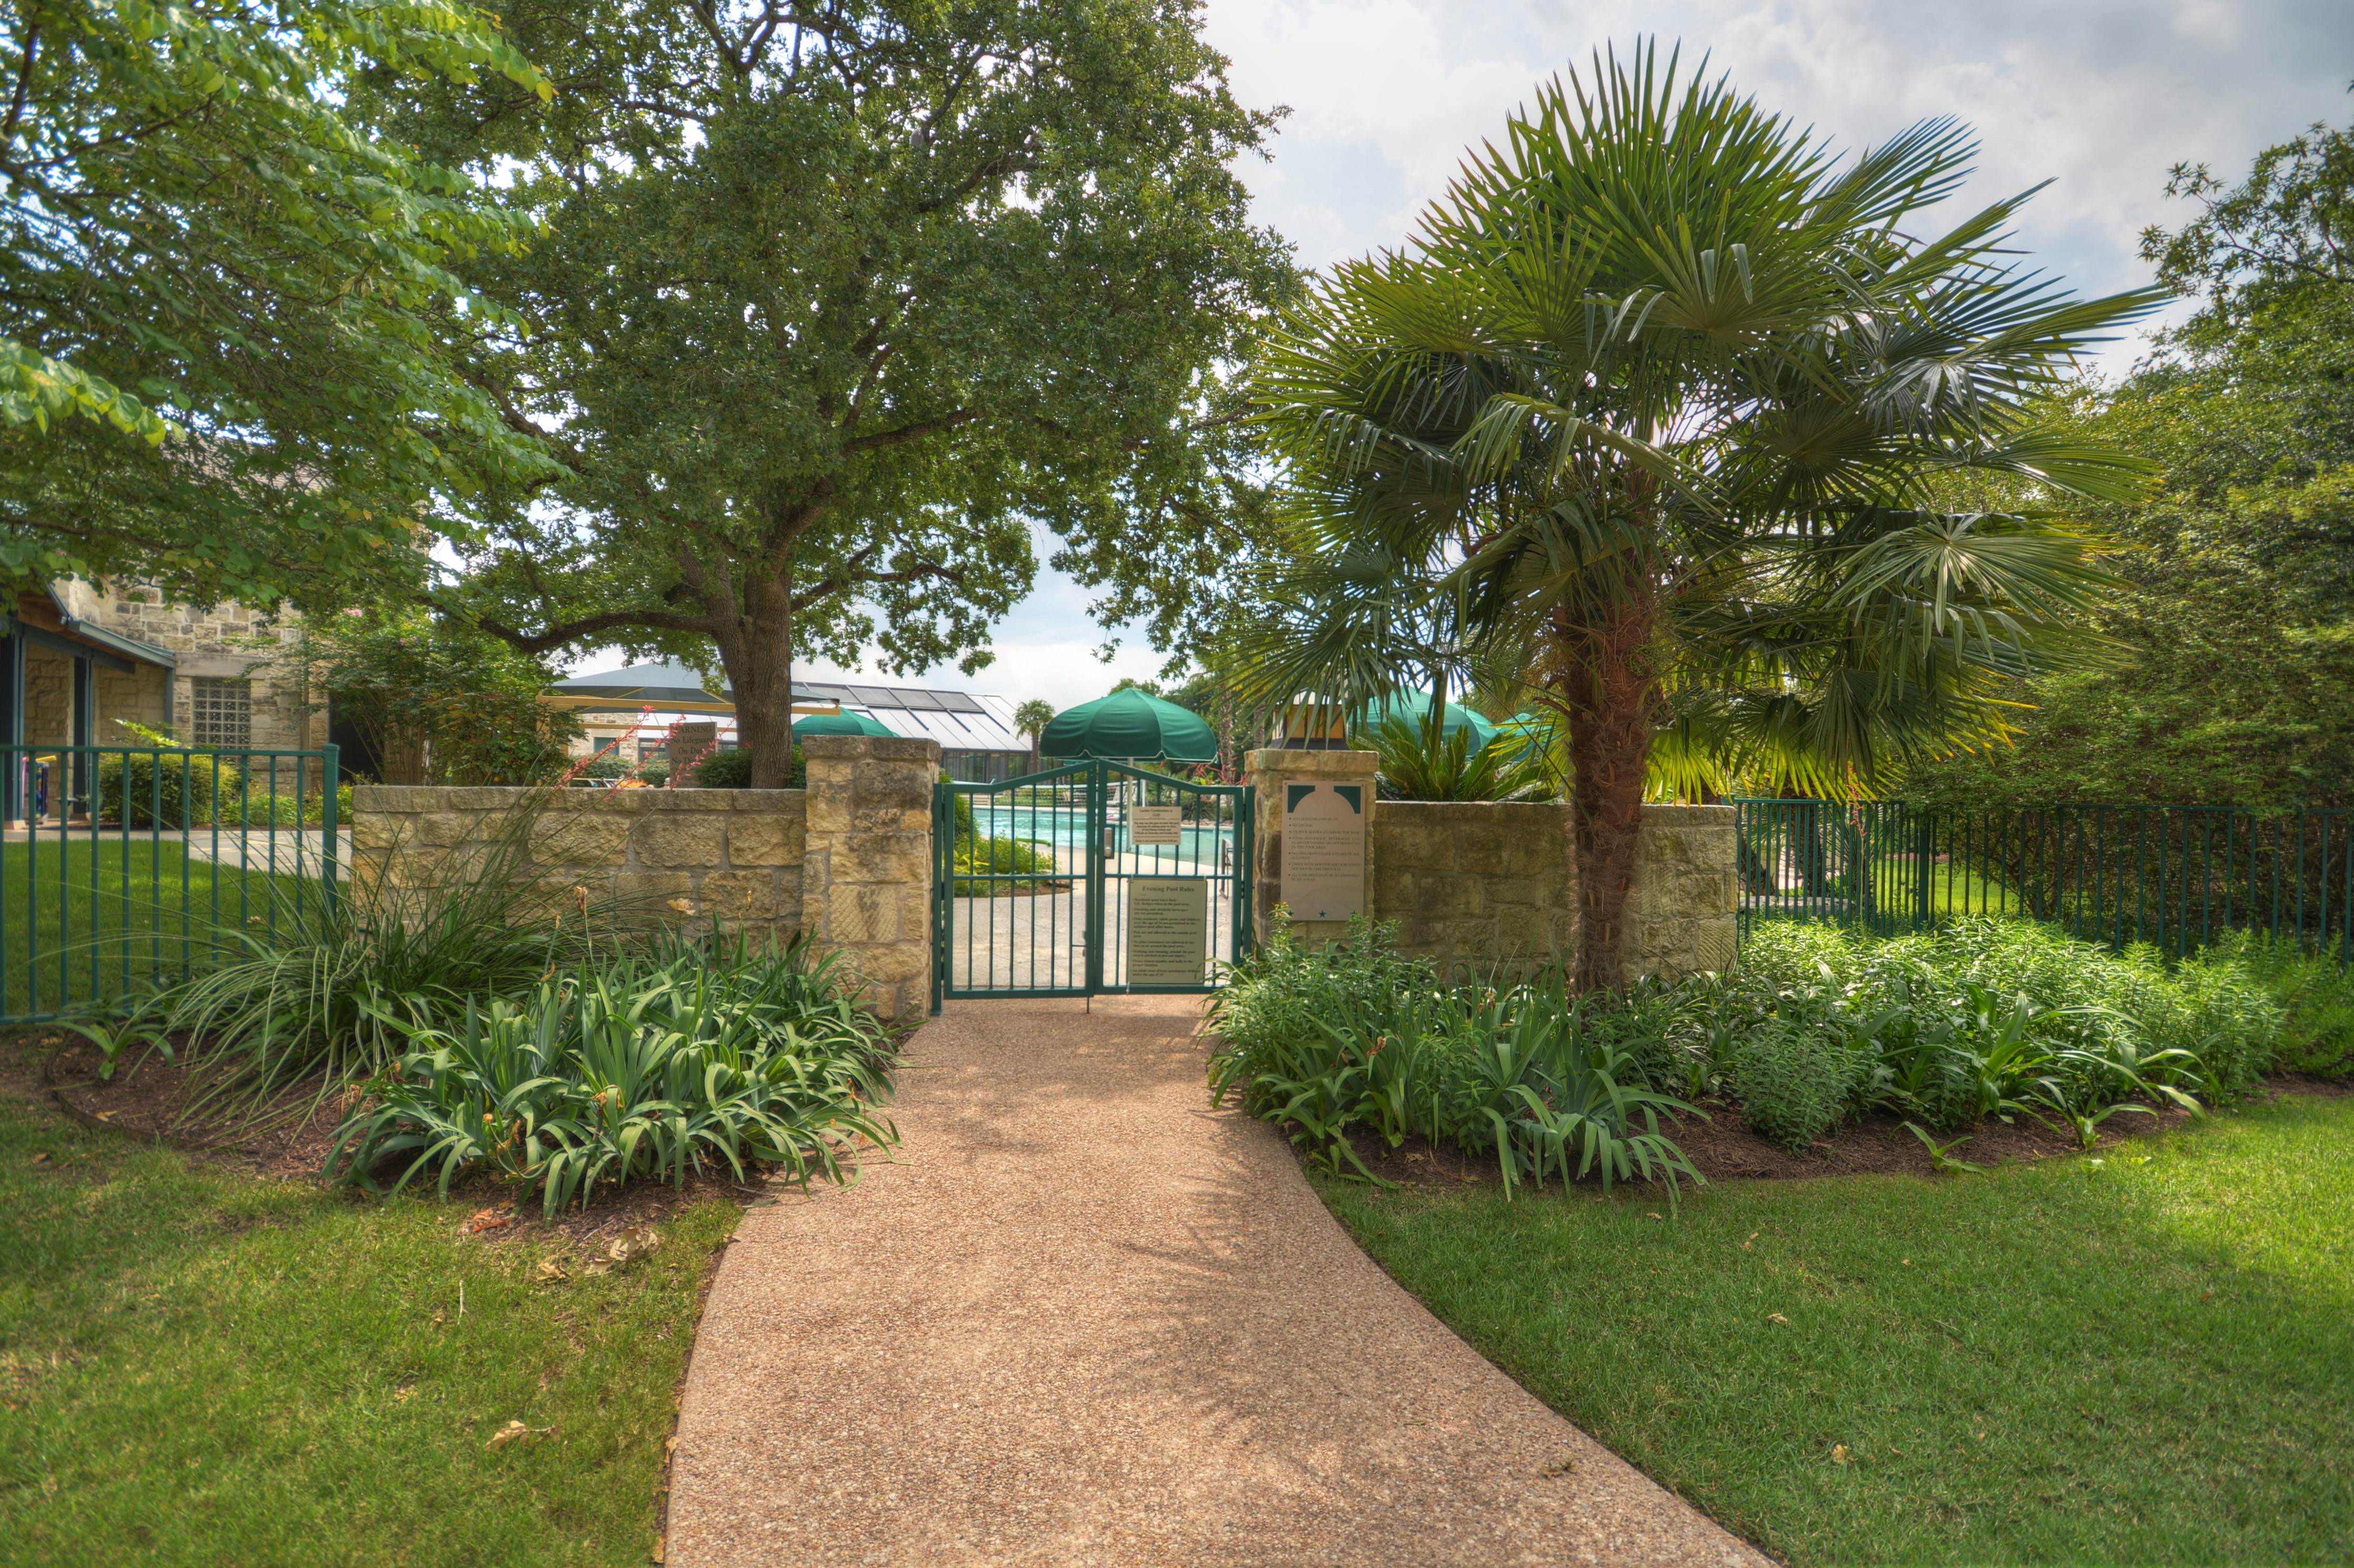 Texas Drive Fitness Center and Outdoor Pool